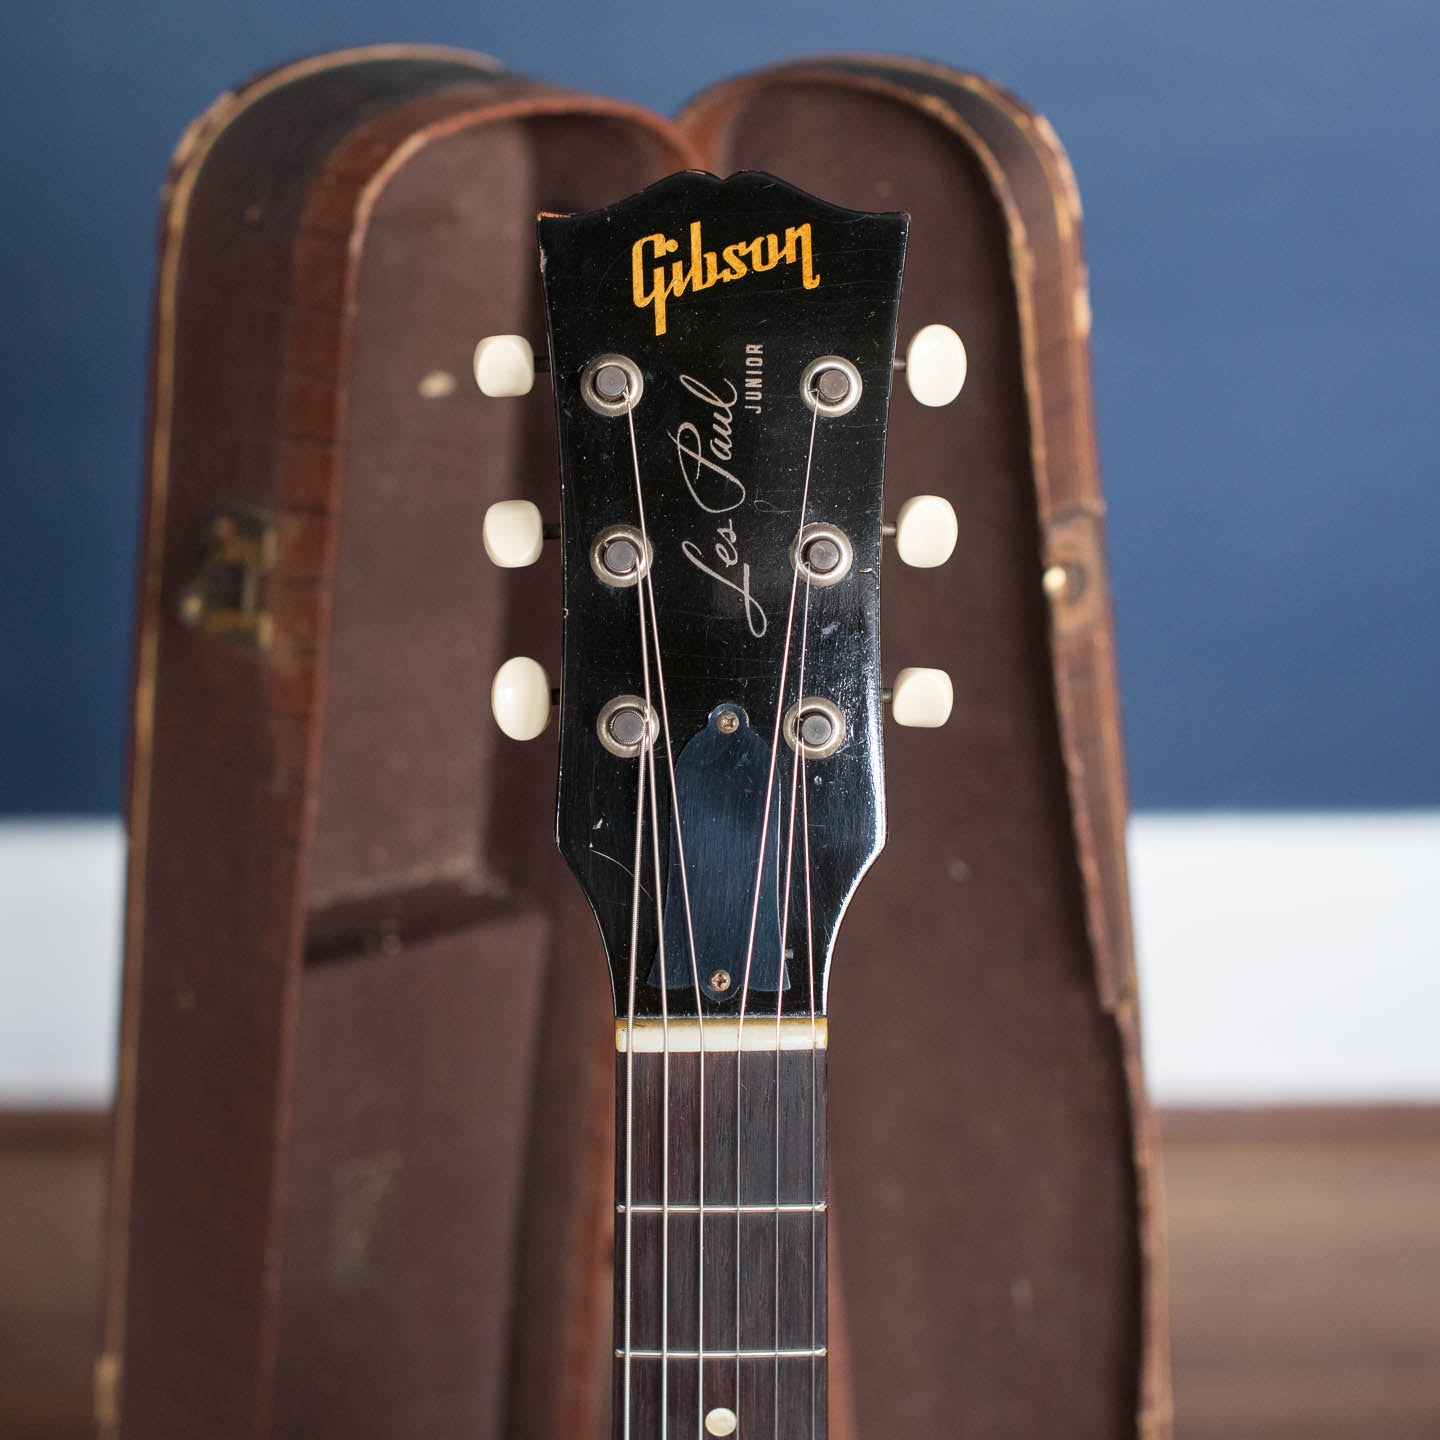 Where to sell vintage Gibson guitar